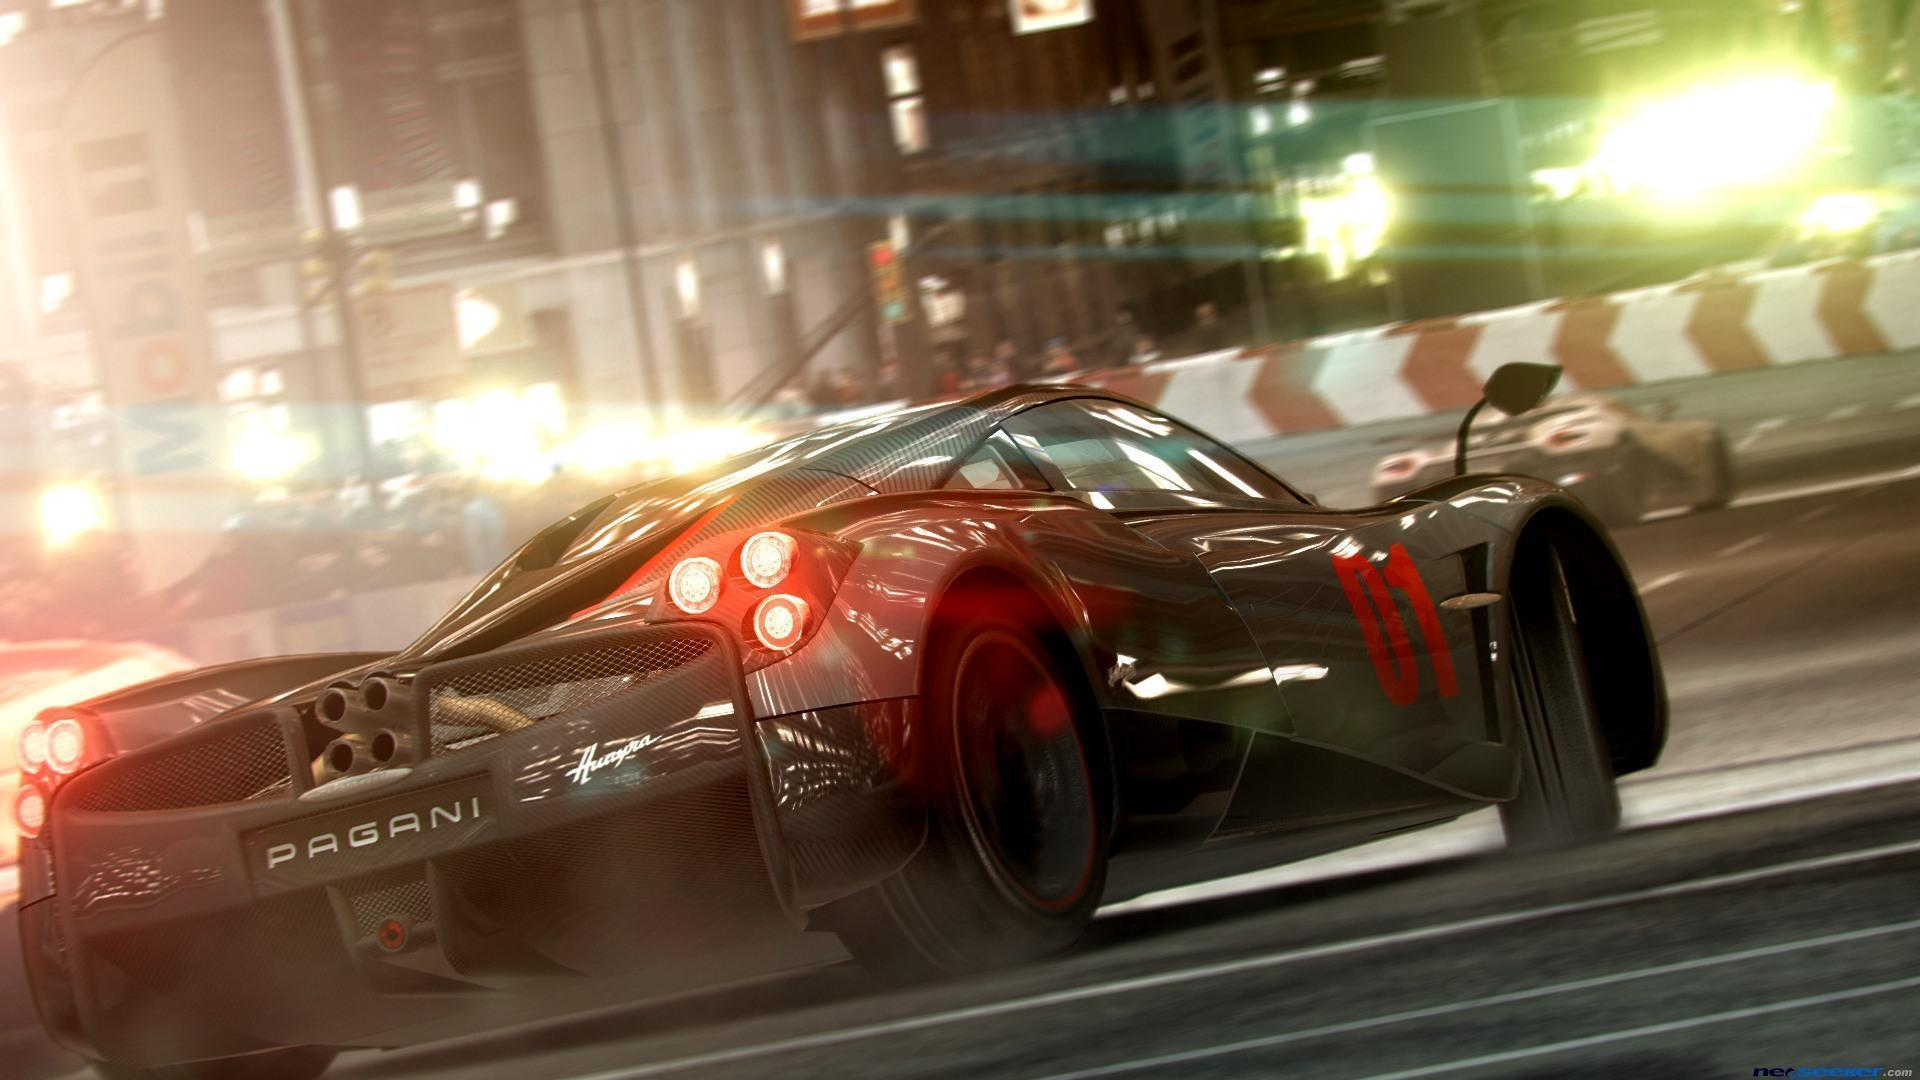 Pagani Wallpapers 4